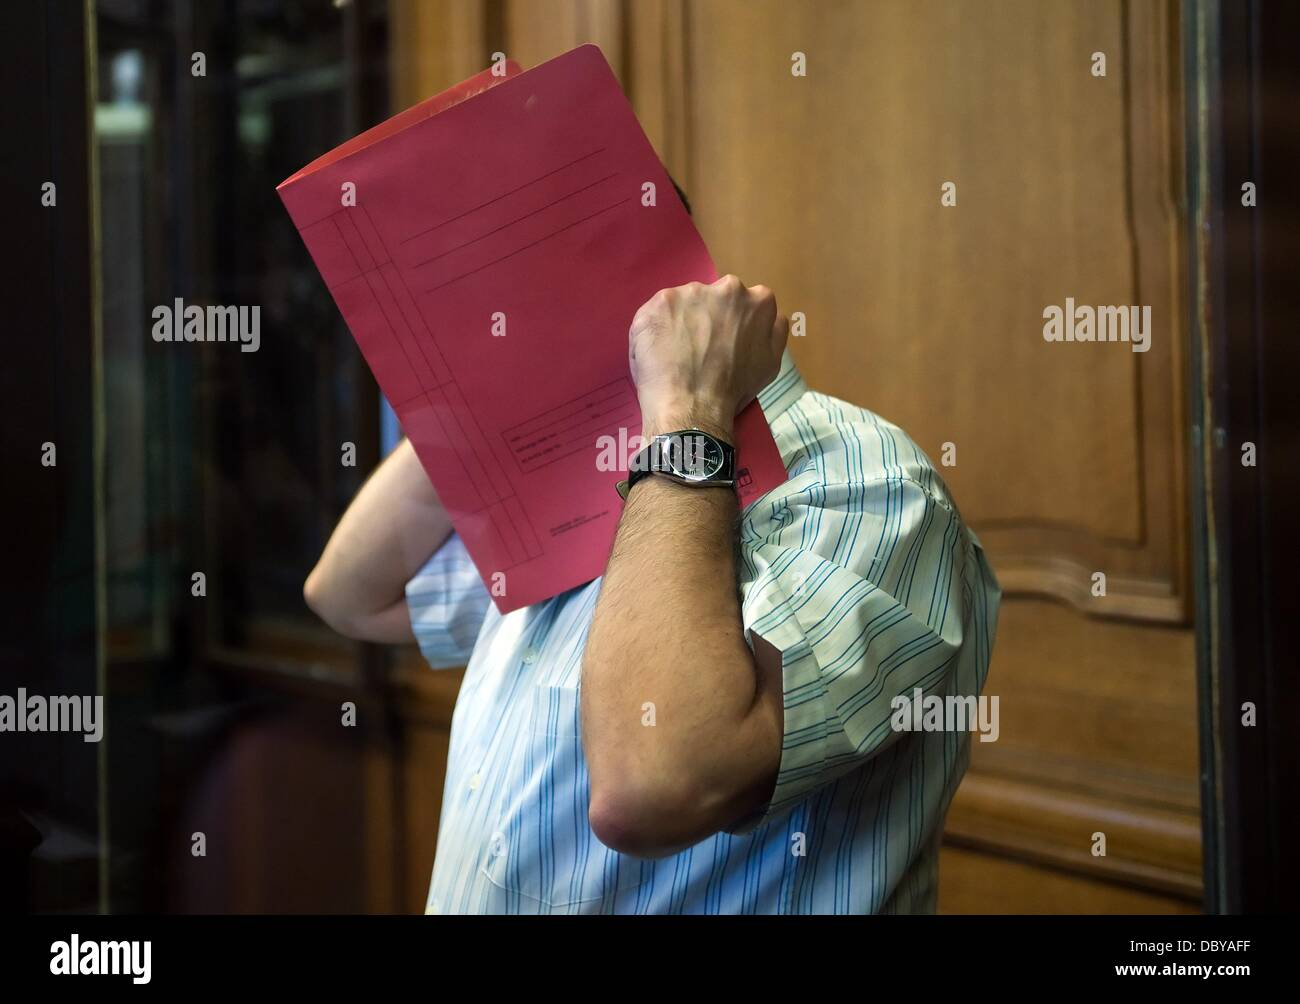 Accused Mehmet Oe. hides his face behind a folder at the criminal court Moabit in Berlin, Germany, 06 August 2013. - Stock Image